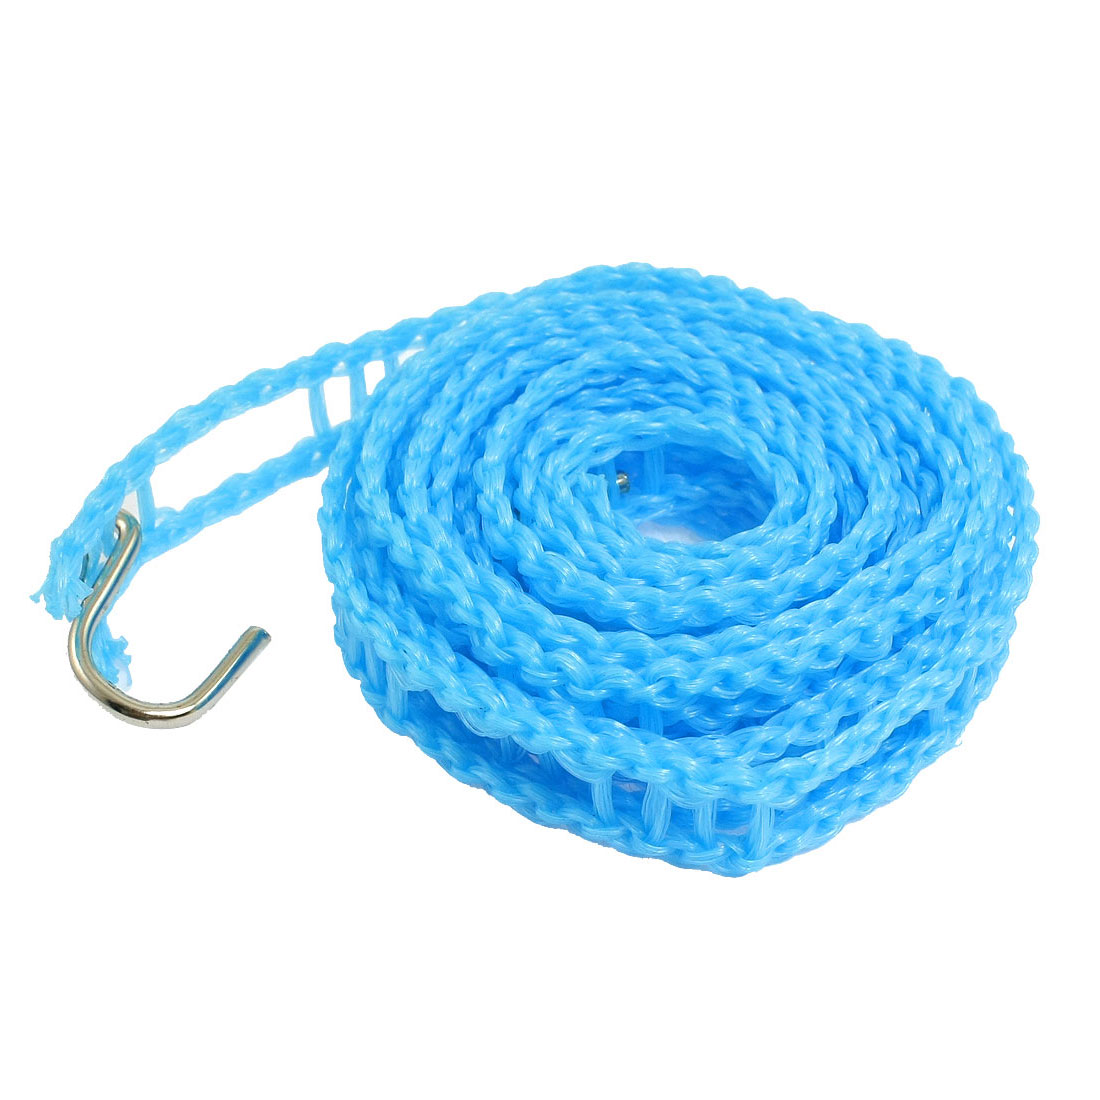 Household Blue 2 Meter Clothes Hanger Rope Nonslip Clothesline